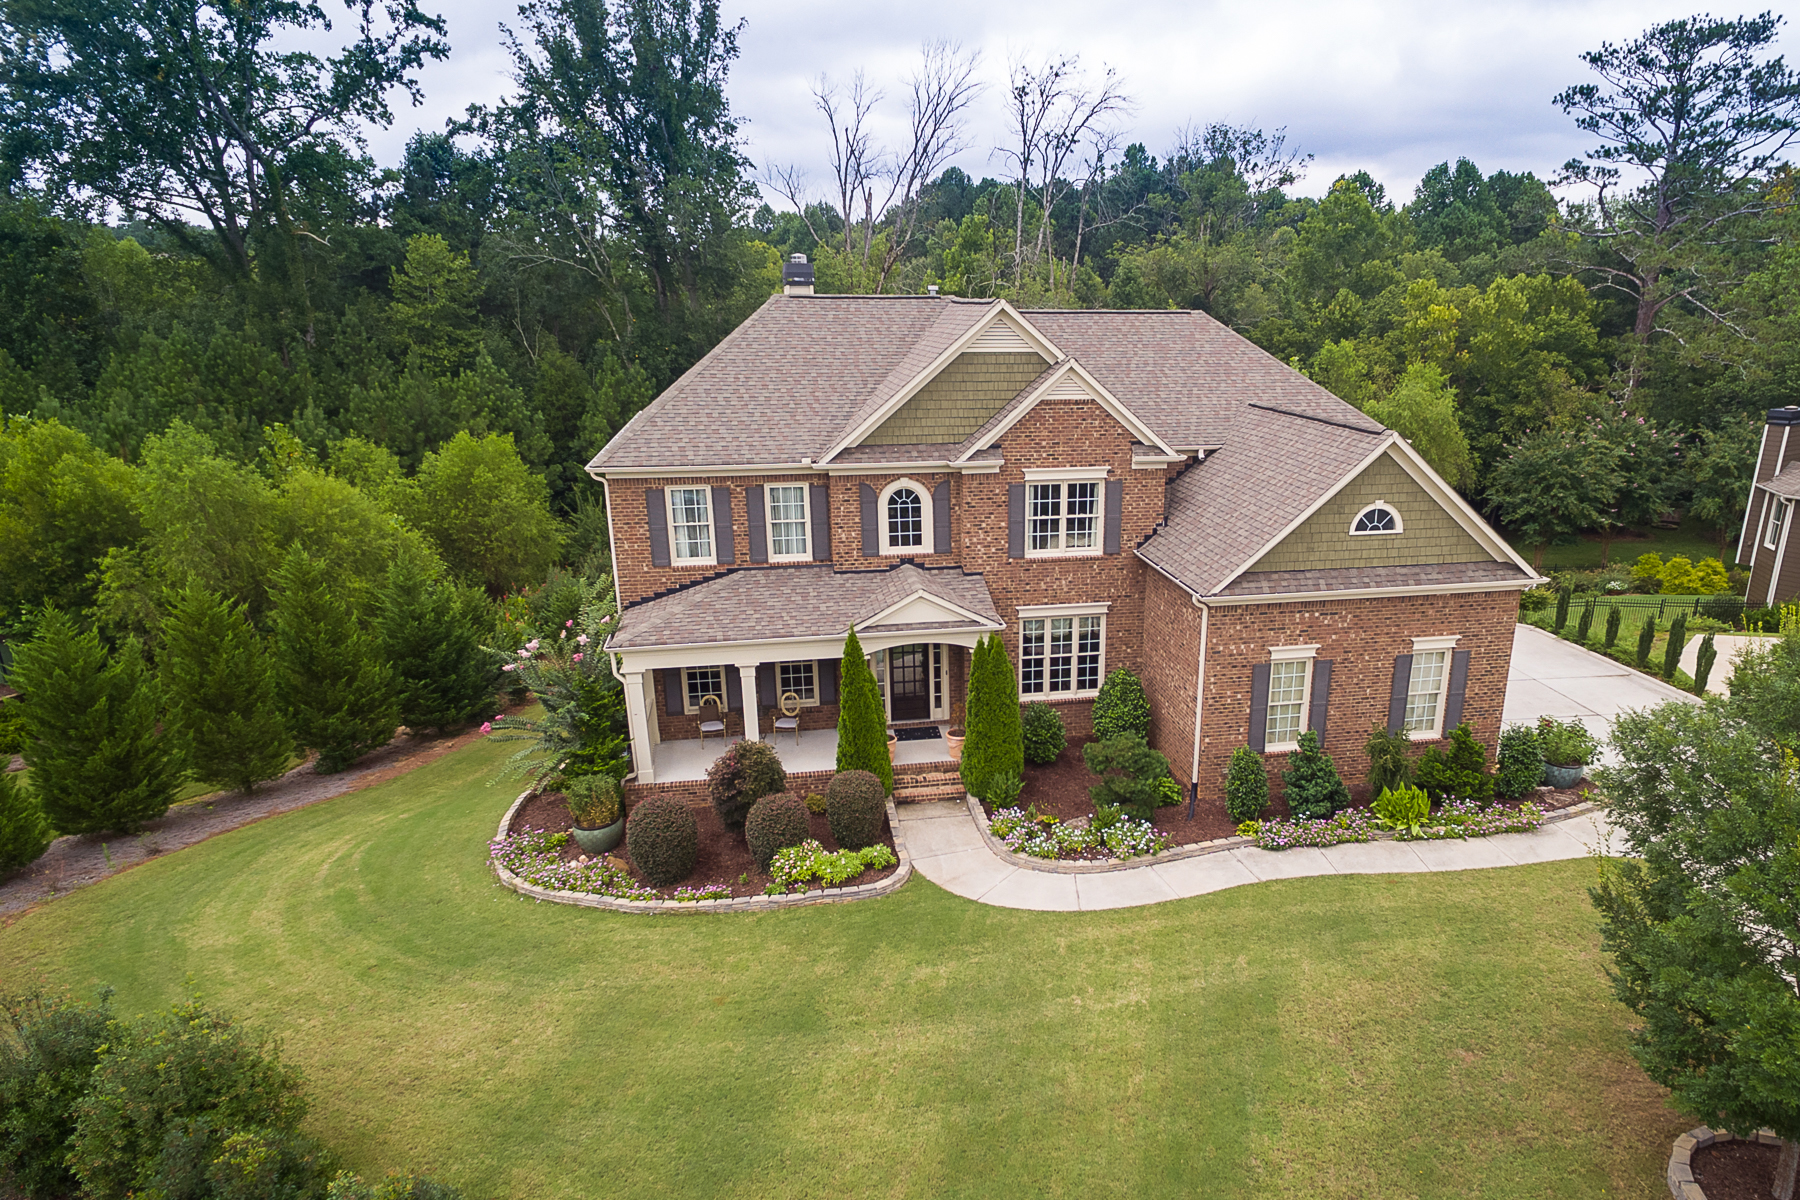 واحد منزل الأسرة للـ Sale في Showhome in Desirable Roswell Woodstock Area 205 Rocky Creek Ct, Woodstock, Georgia, 30188 United States